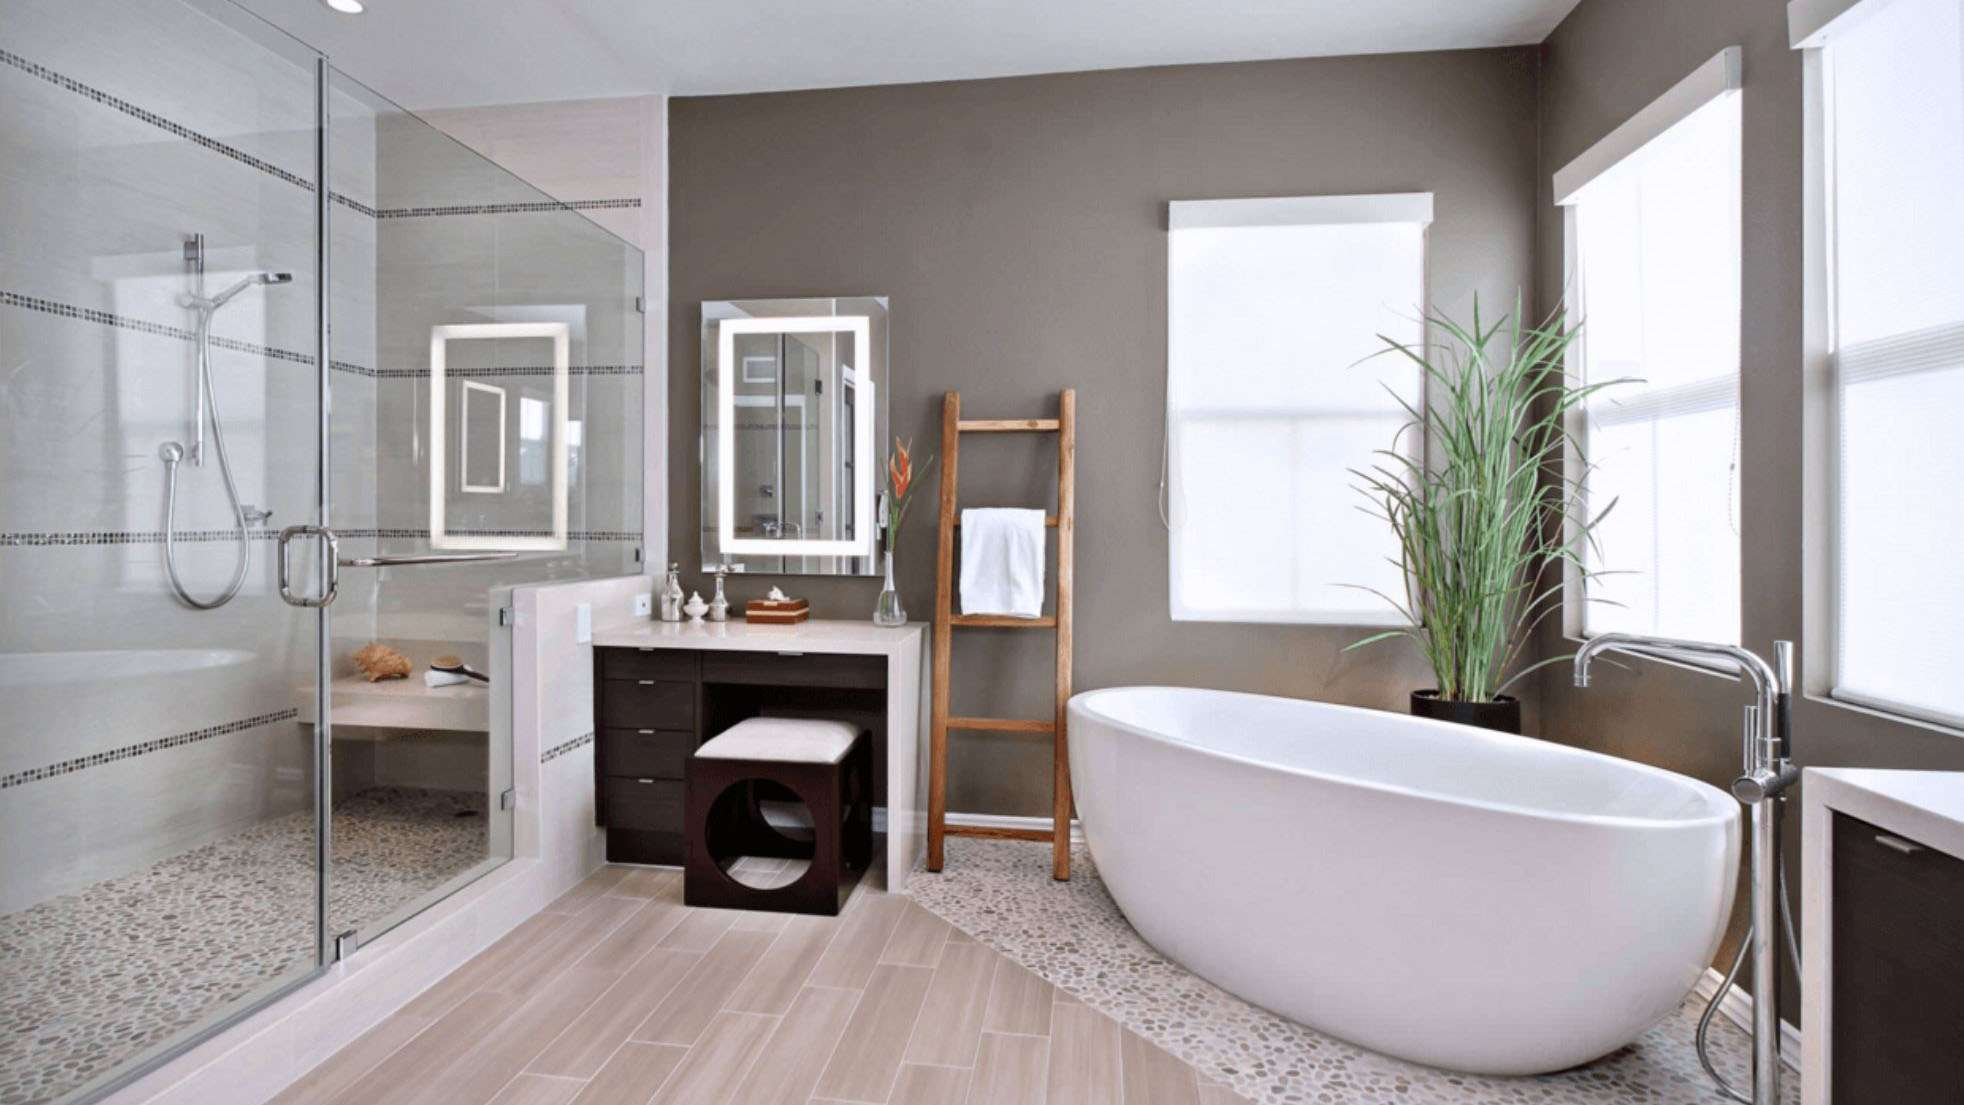 Best Bathroom Paint Do Bathrooms Need Special Paint - Special paint for bathroom